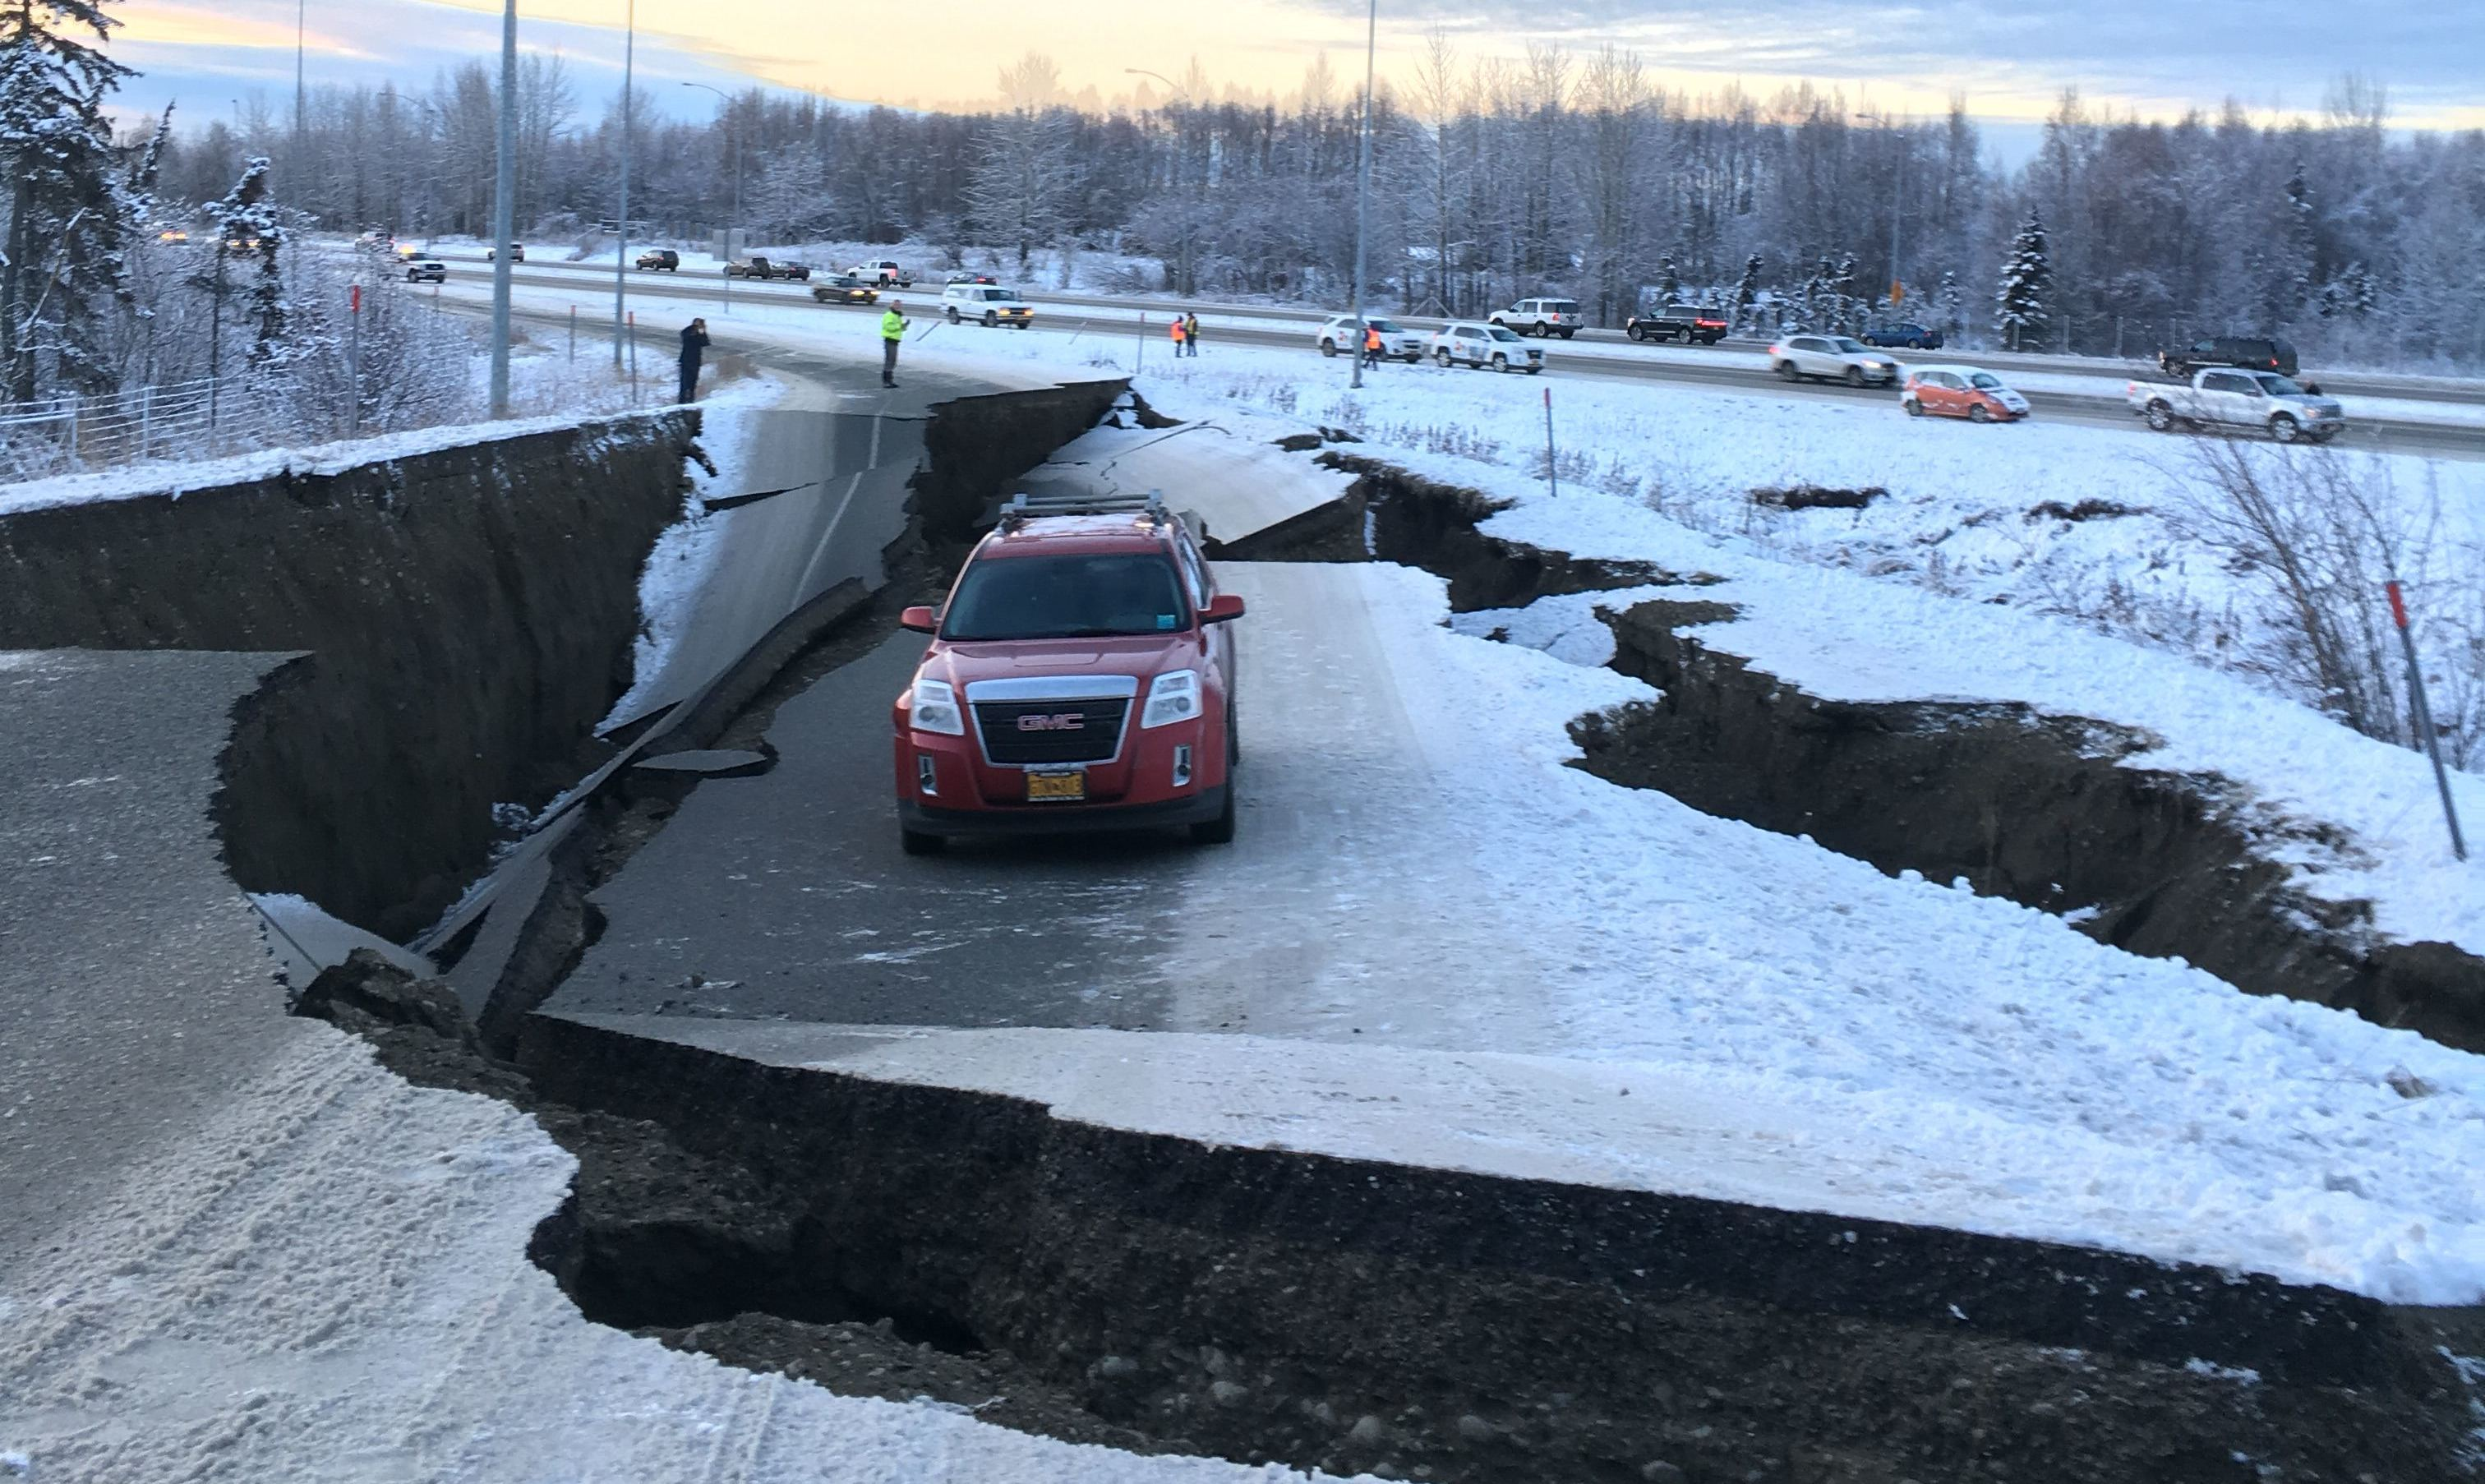 Major earthquake damages buildings and roads in Anchorage